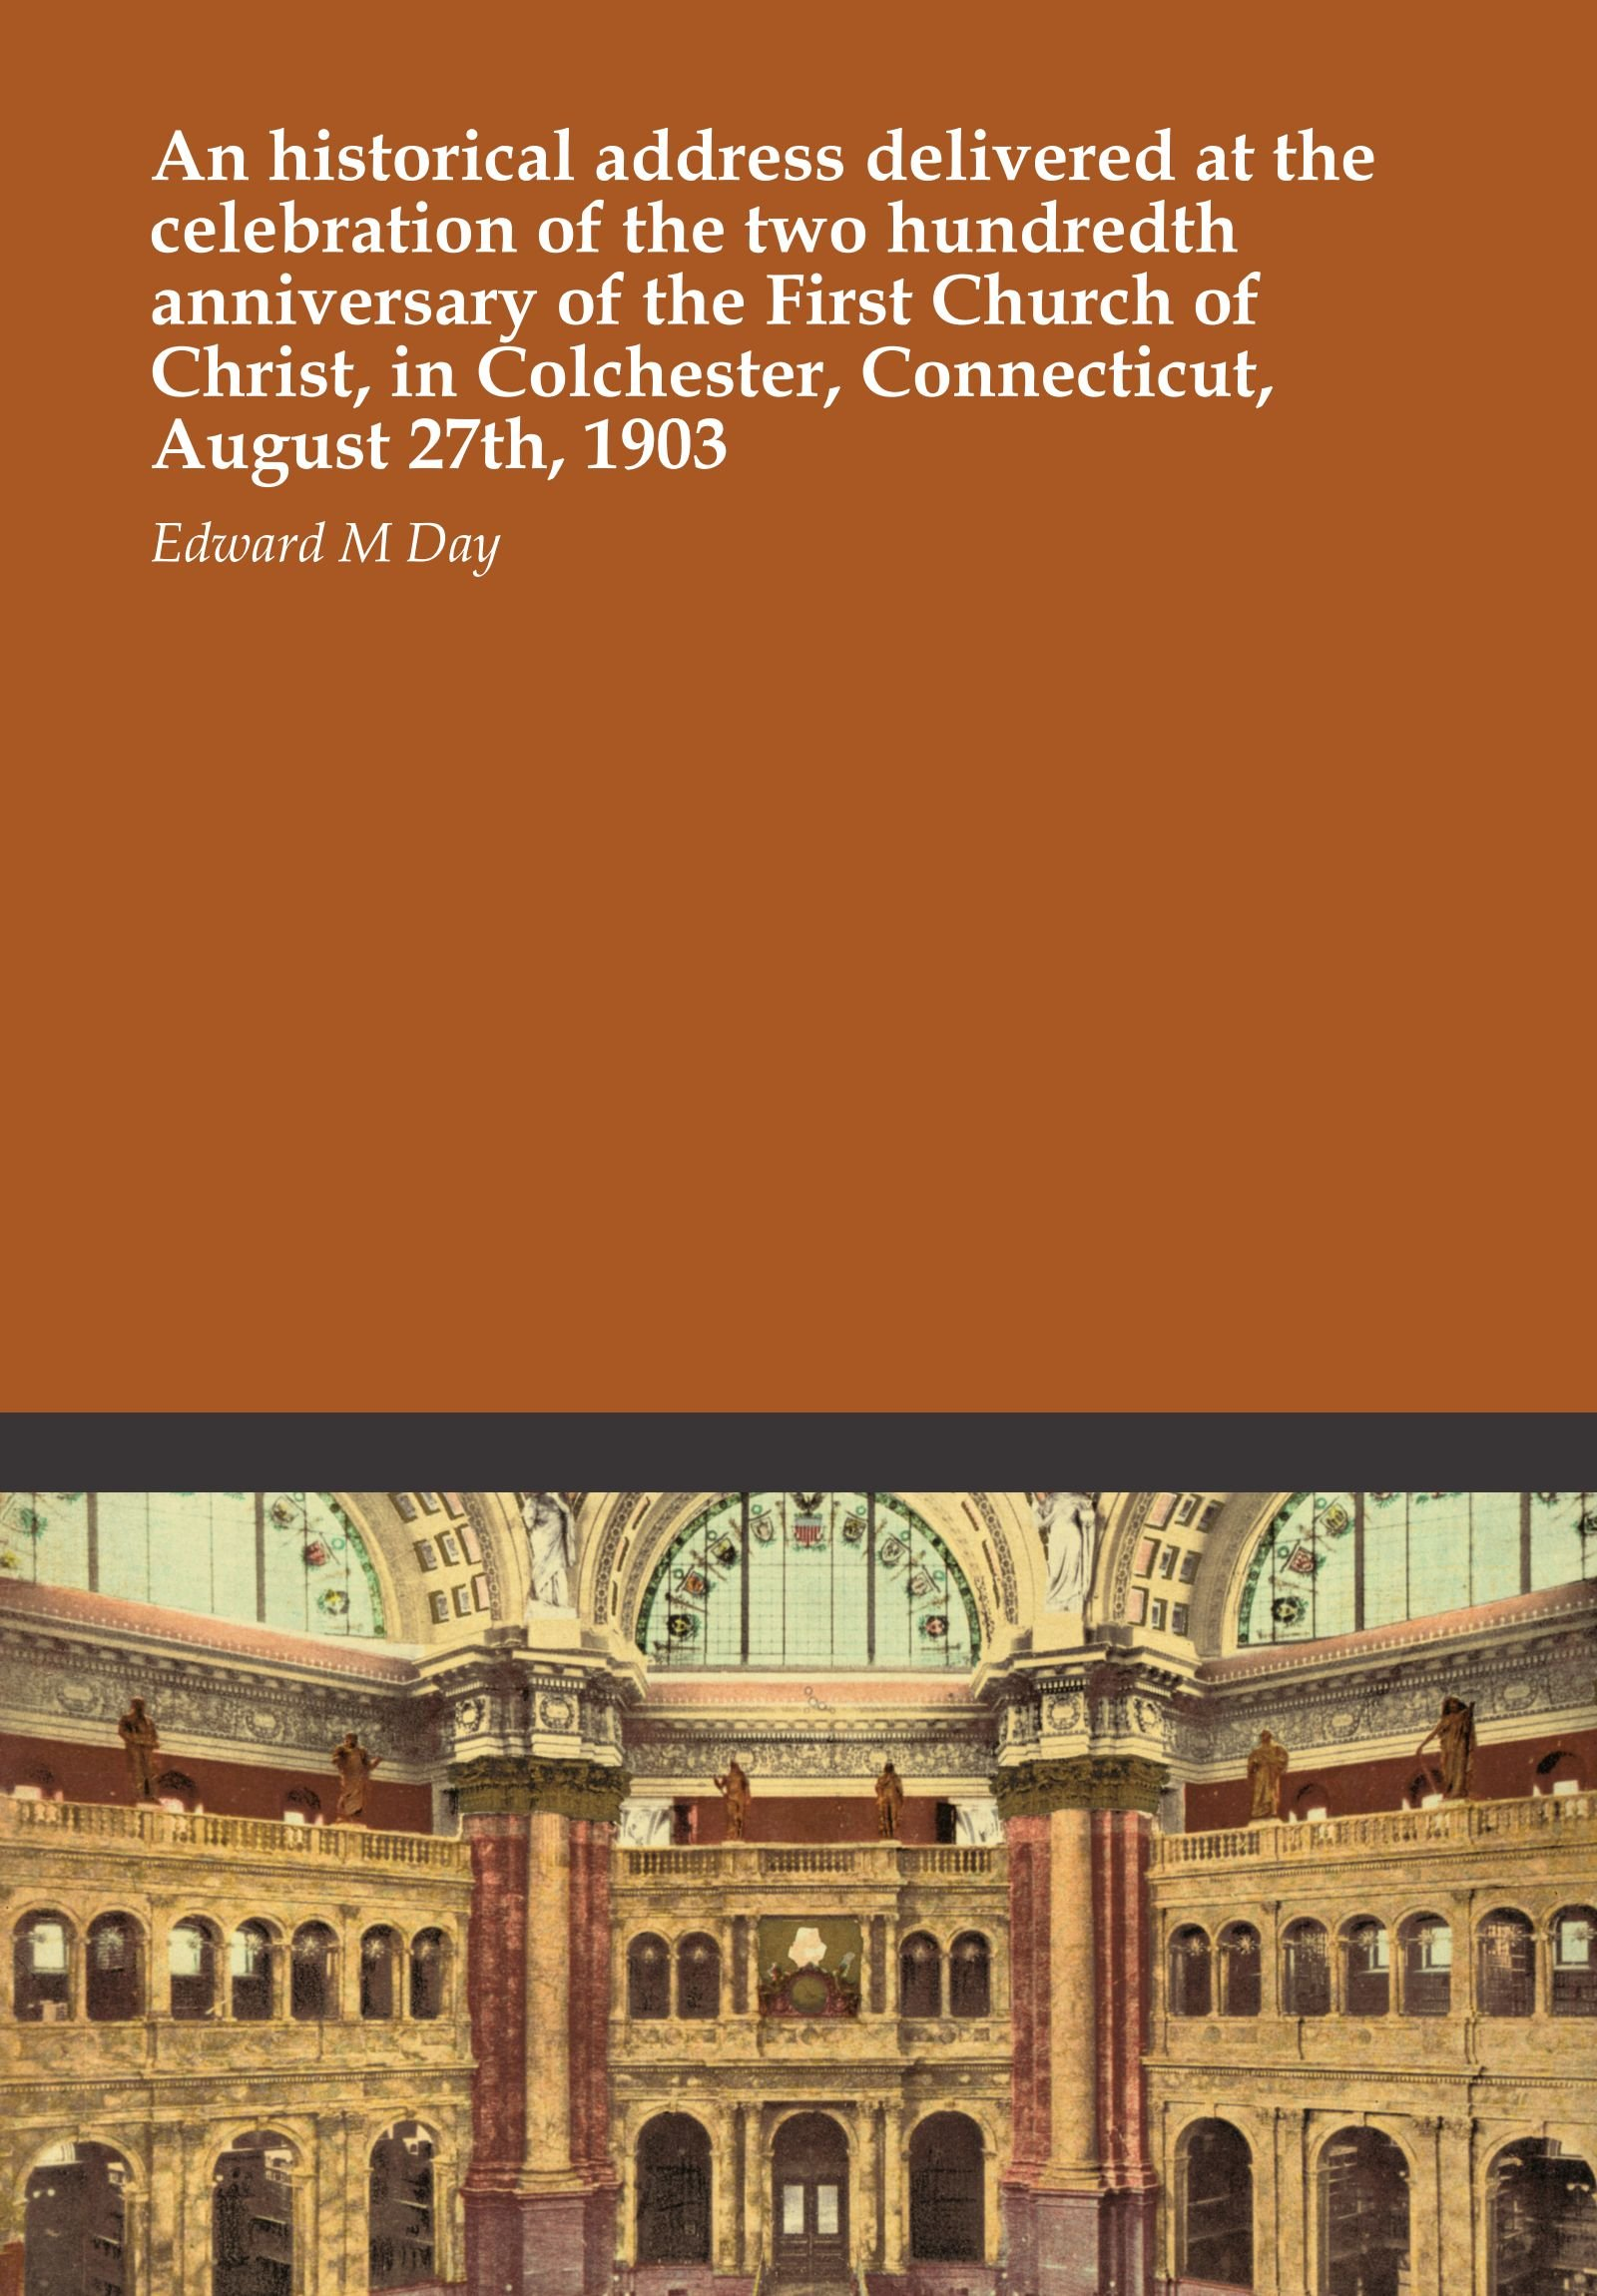 Read Online An historical address delivered at the celebration of the two hundredth anniversary of the First Church of Christ, in Colchester, Connecticut, August 27th, 1903 PDF